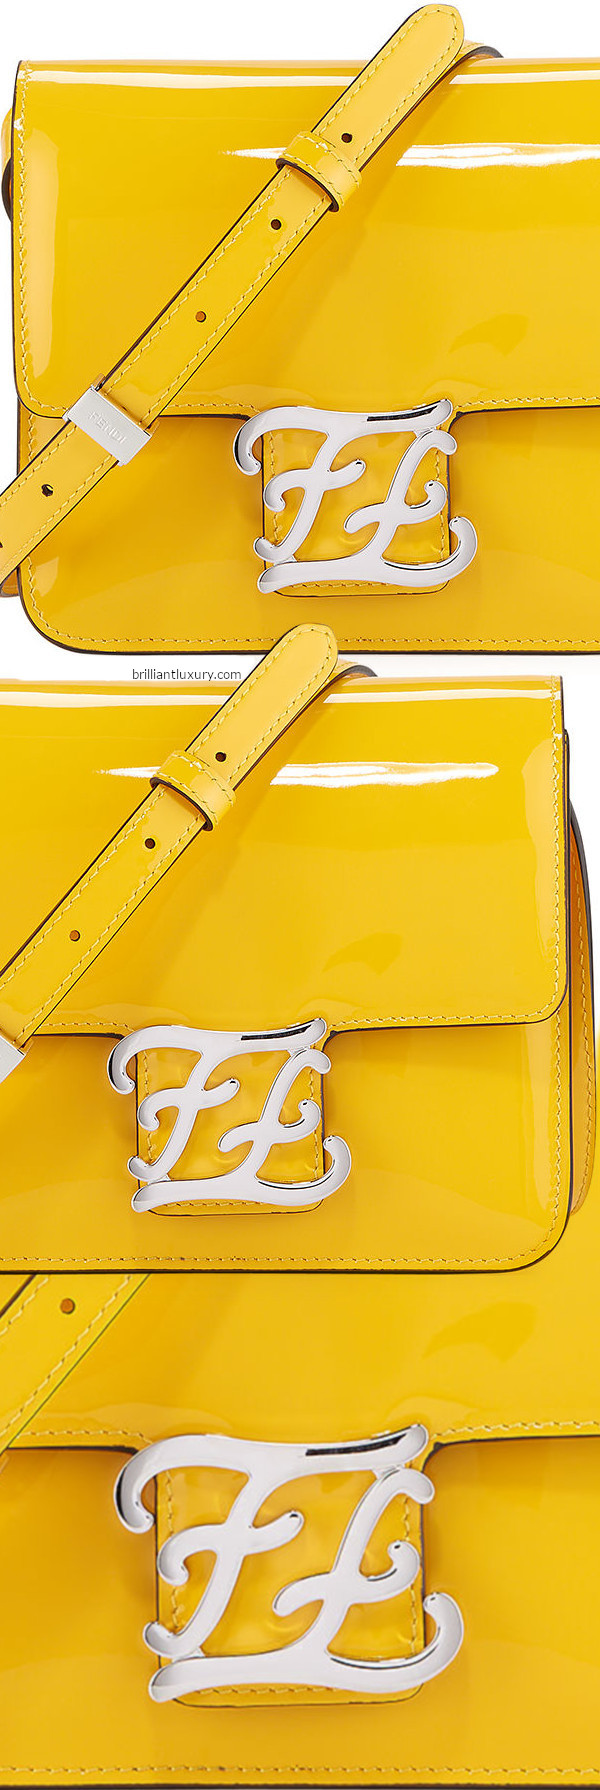 Fendi Karligraphy yellow shiny shoulder bag